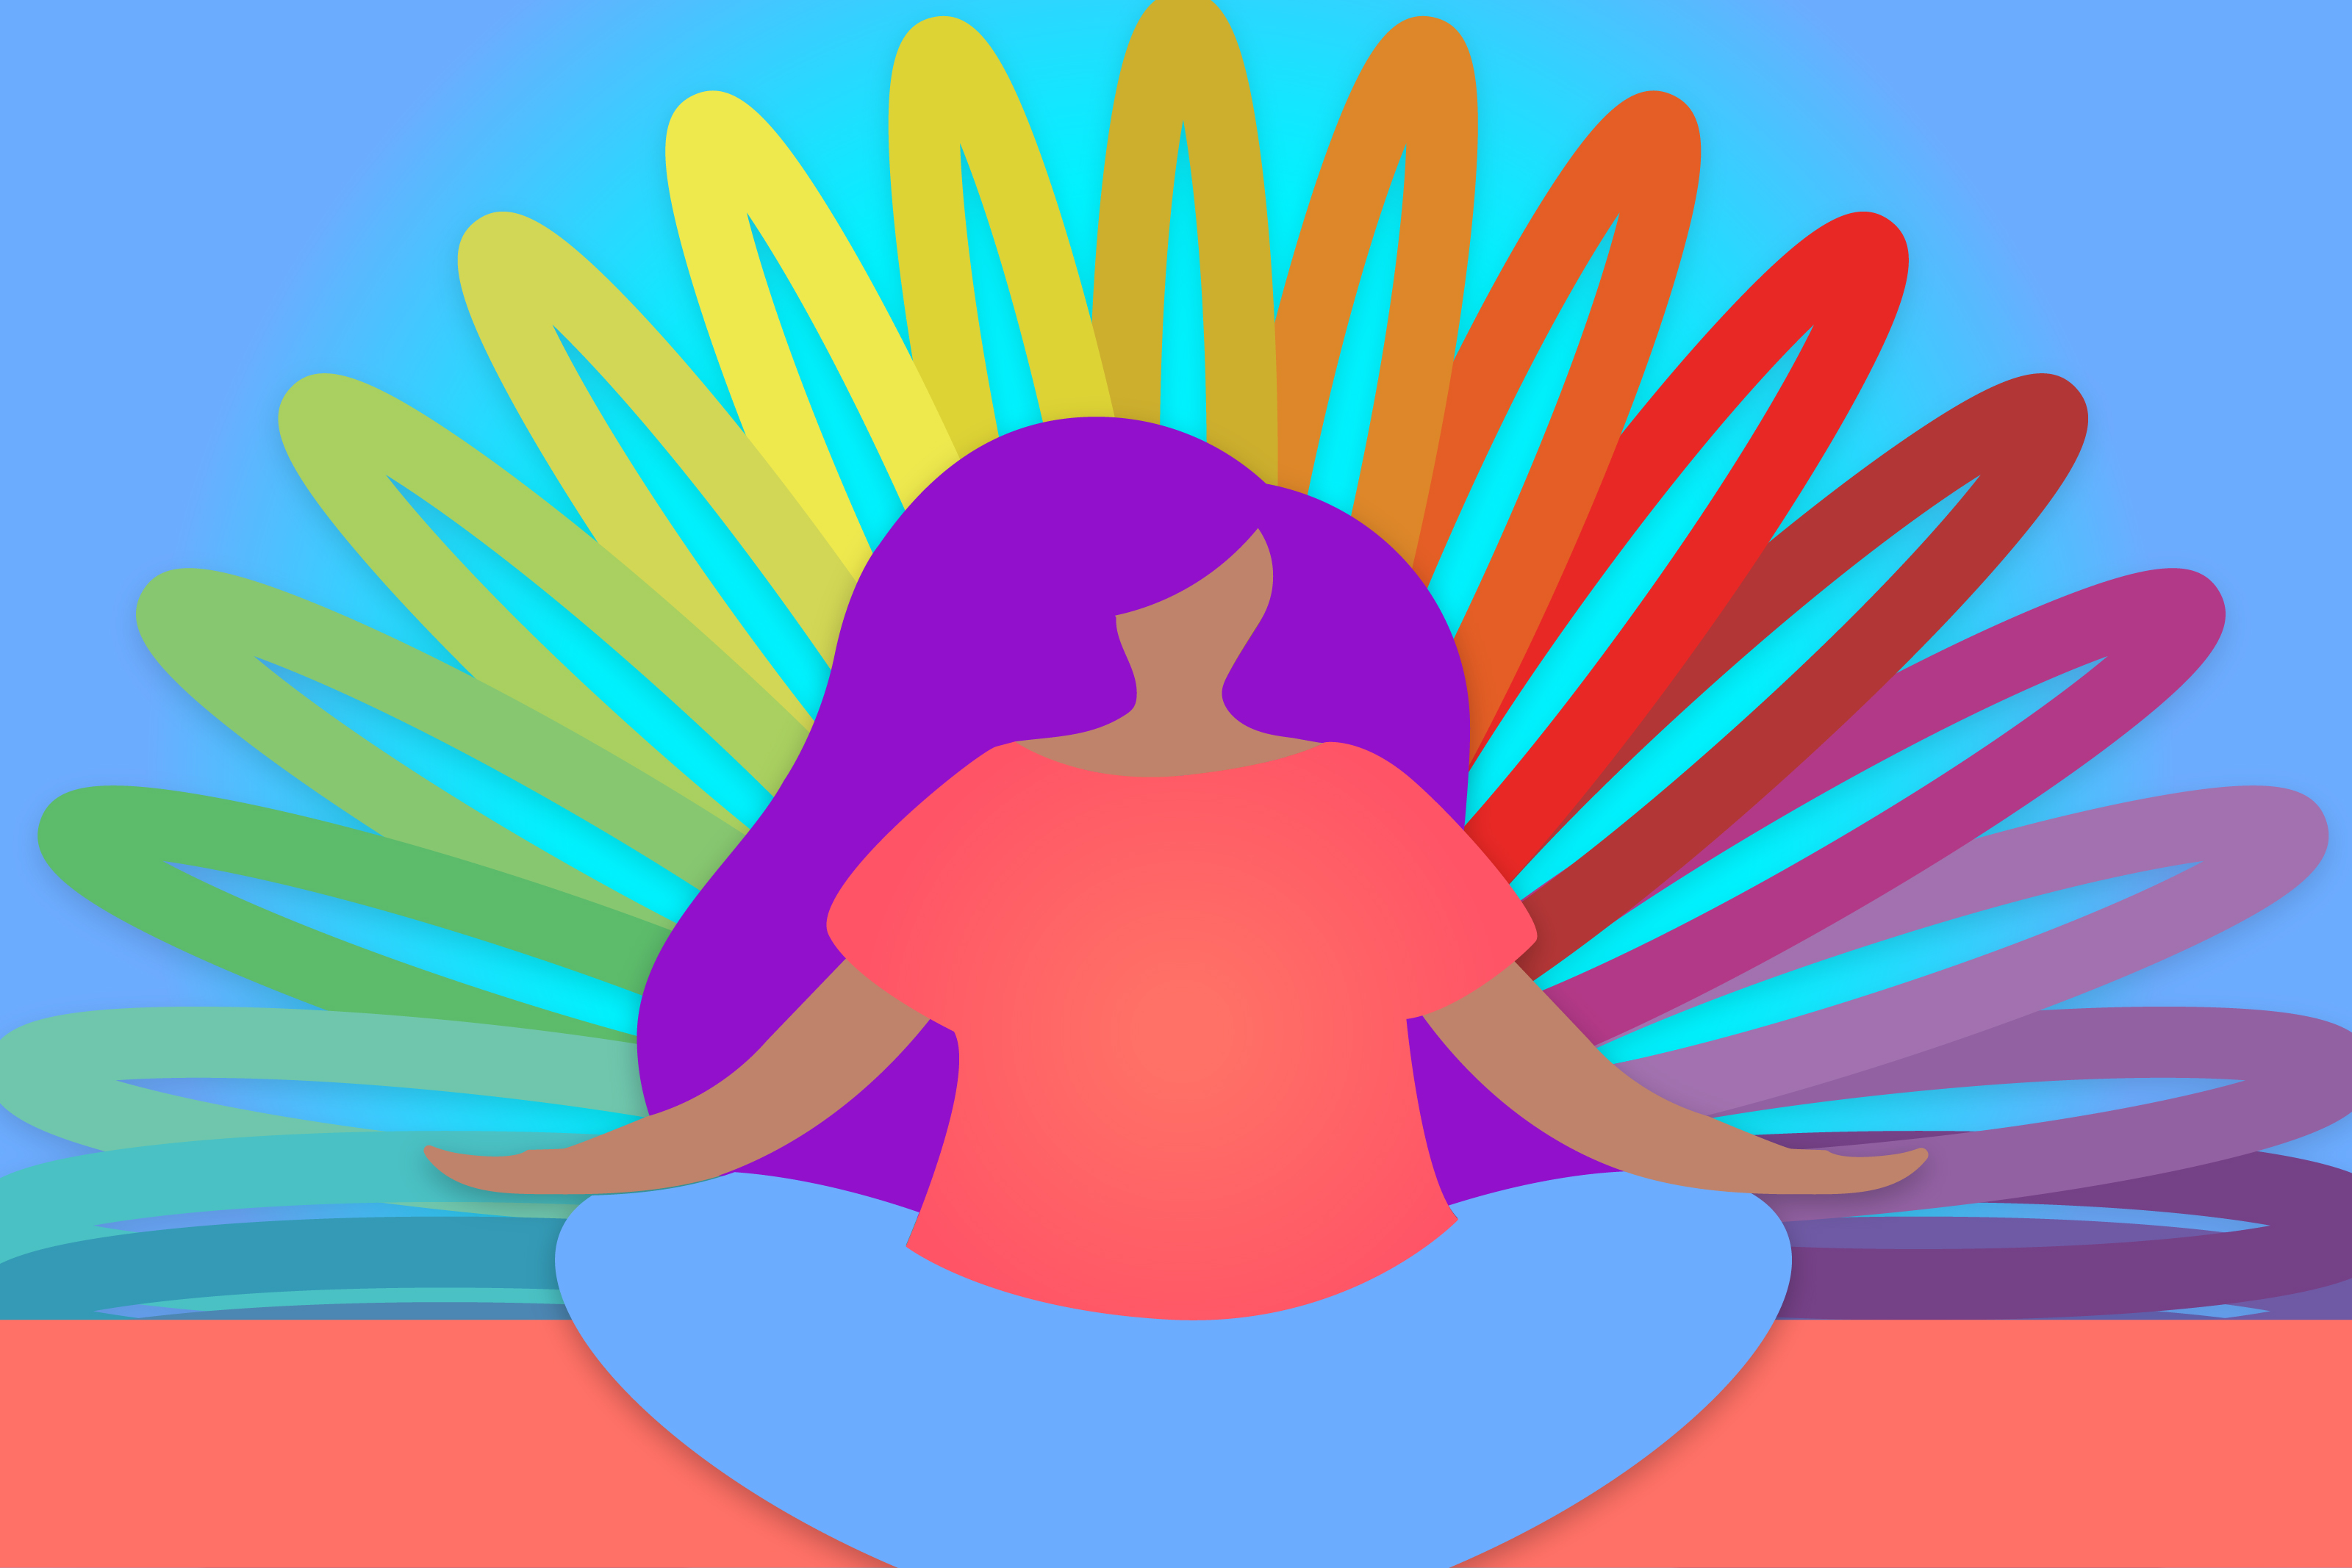 Graphic of woman meditating with colored slinky in the back